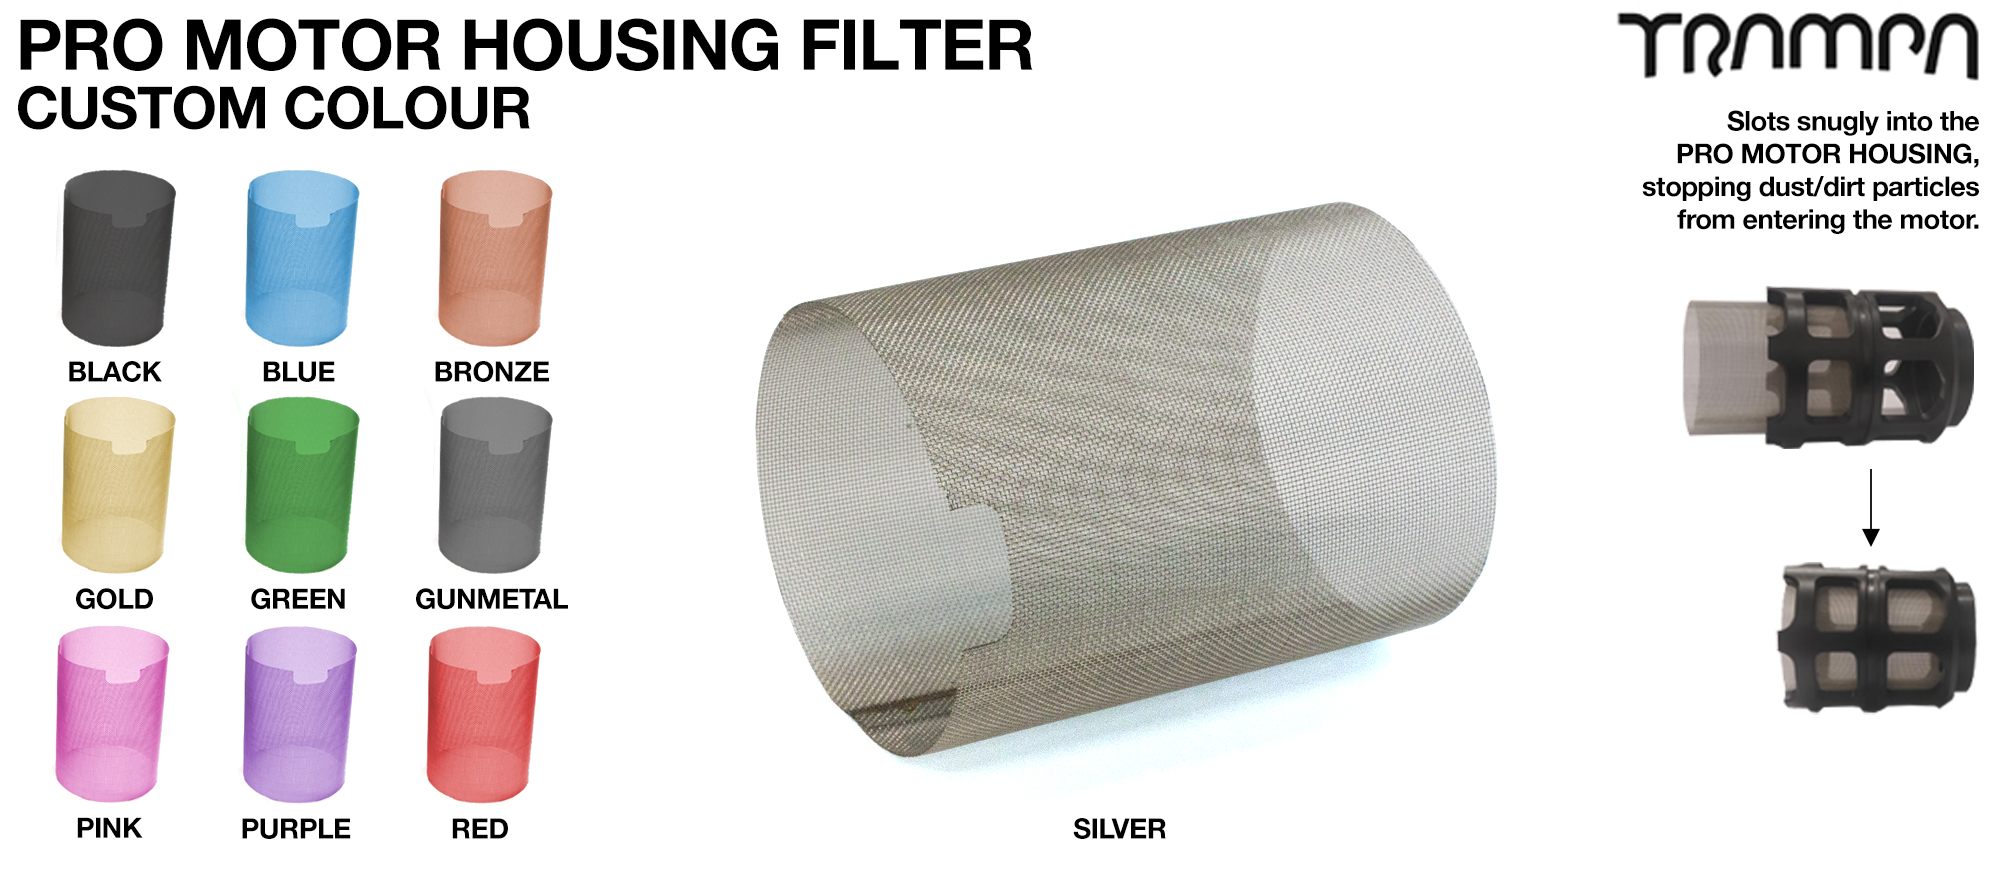 MkII Motor Protection Sleeve Stainless Steel Mesh FILTER